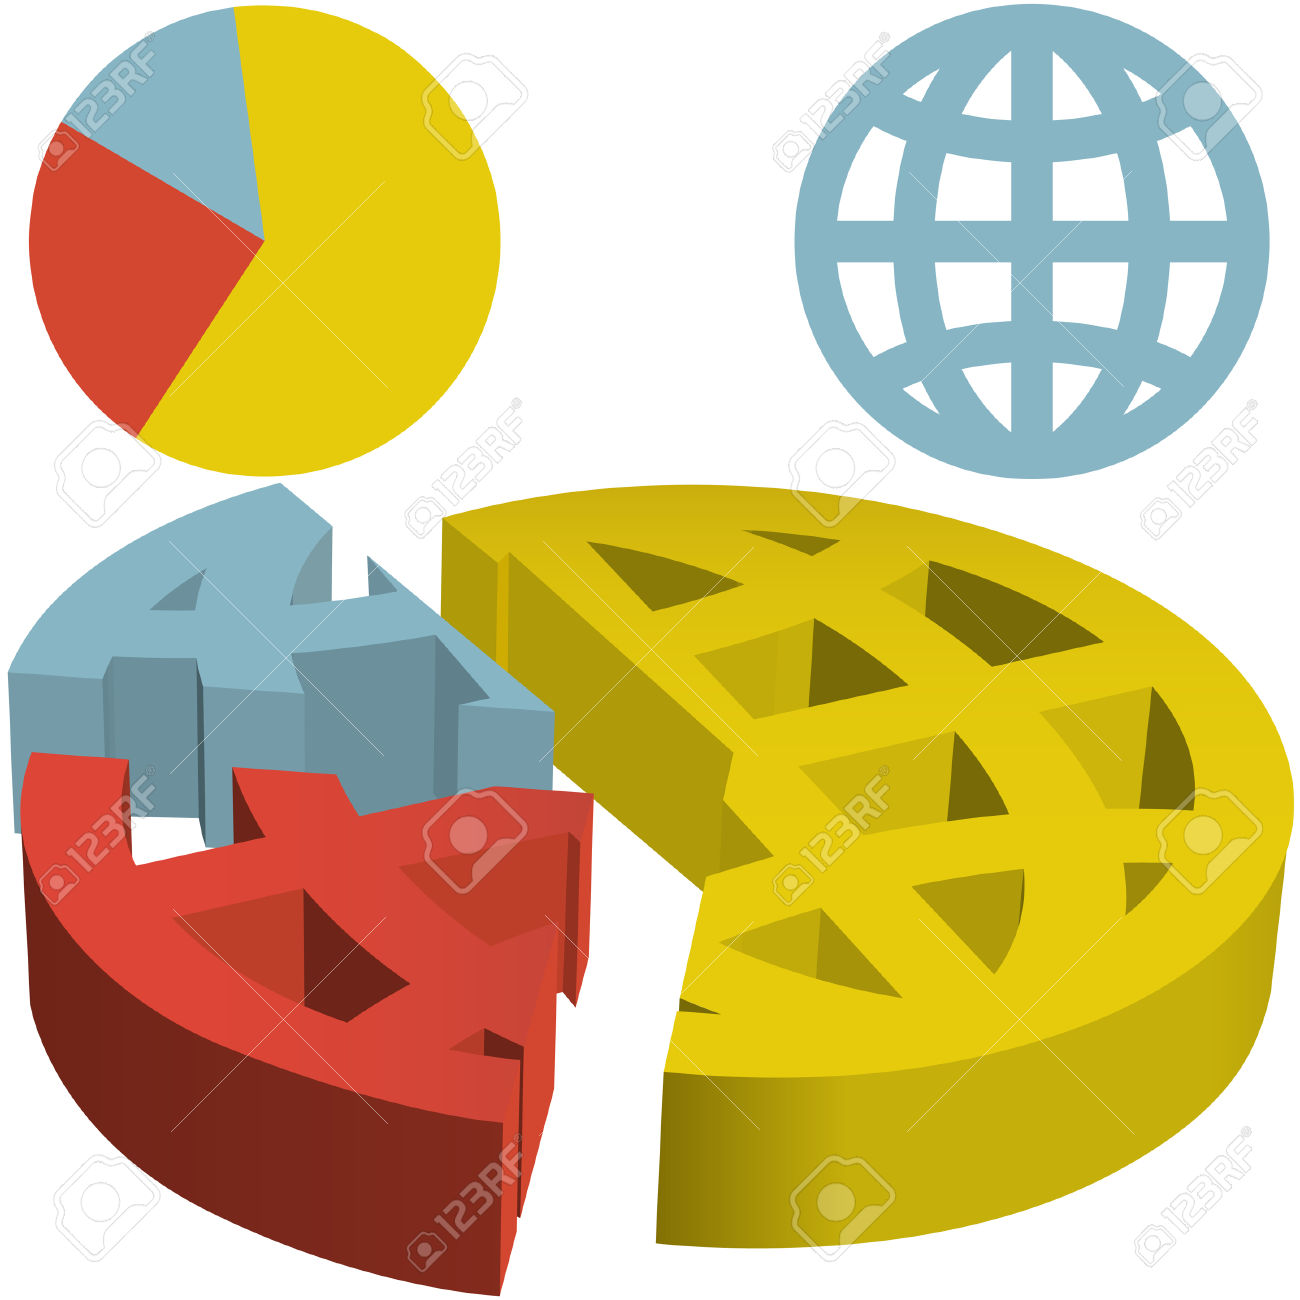 A Financial Pie Chart Of The Globe With The World Divided Into.